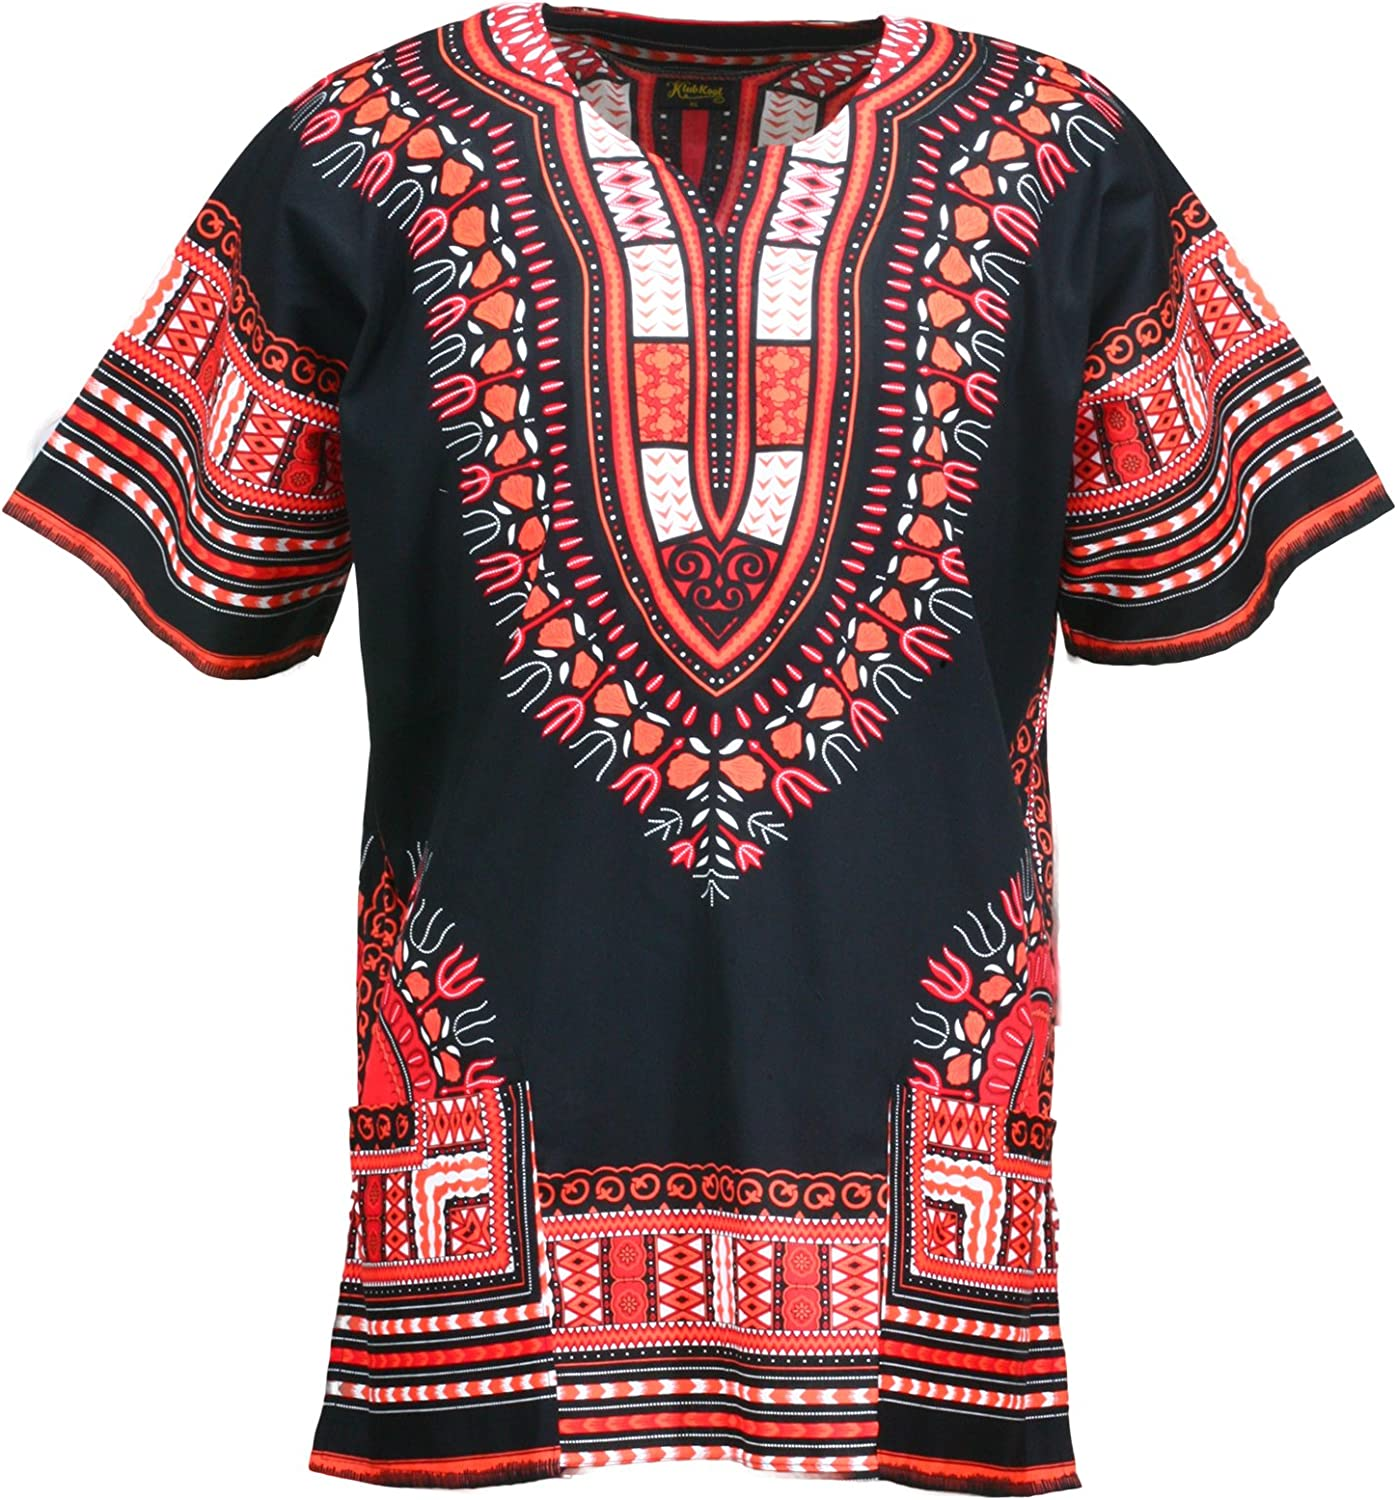 Mens Vintage Shirts – Casual, Dress, T-shirts, Polos KlubKool Dashiki Shirt Tribal African Caftan Boho Unisex Top Shirt $12.50 AT vintagedancer.com